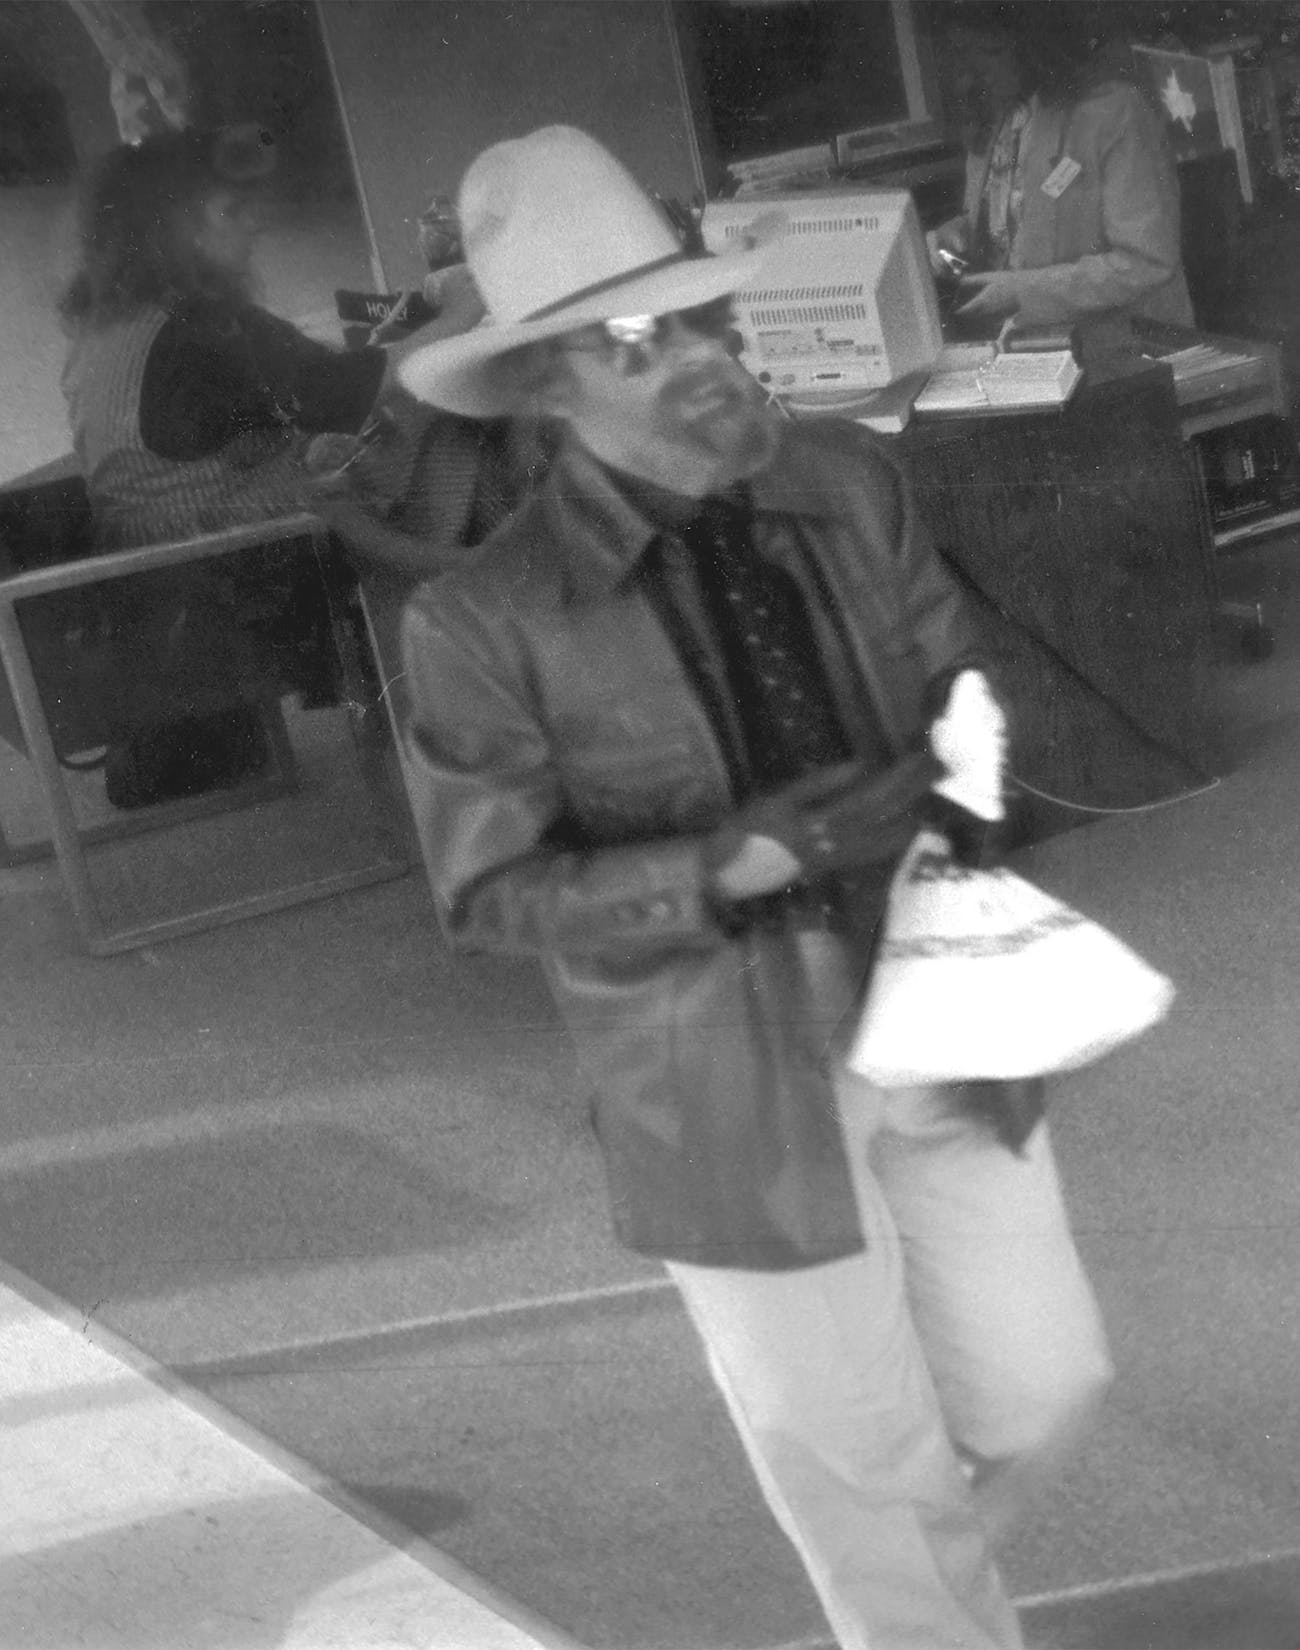 A surveillance camera captured Peggy Jo Tallas, wearing men's clothes and a fake beard, during a robbery in 1992.